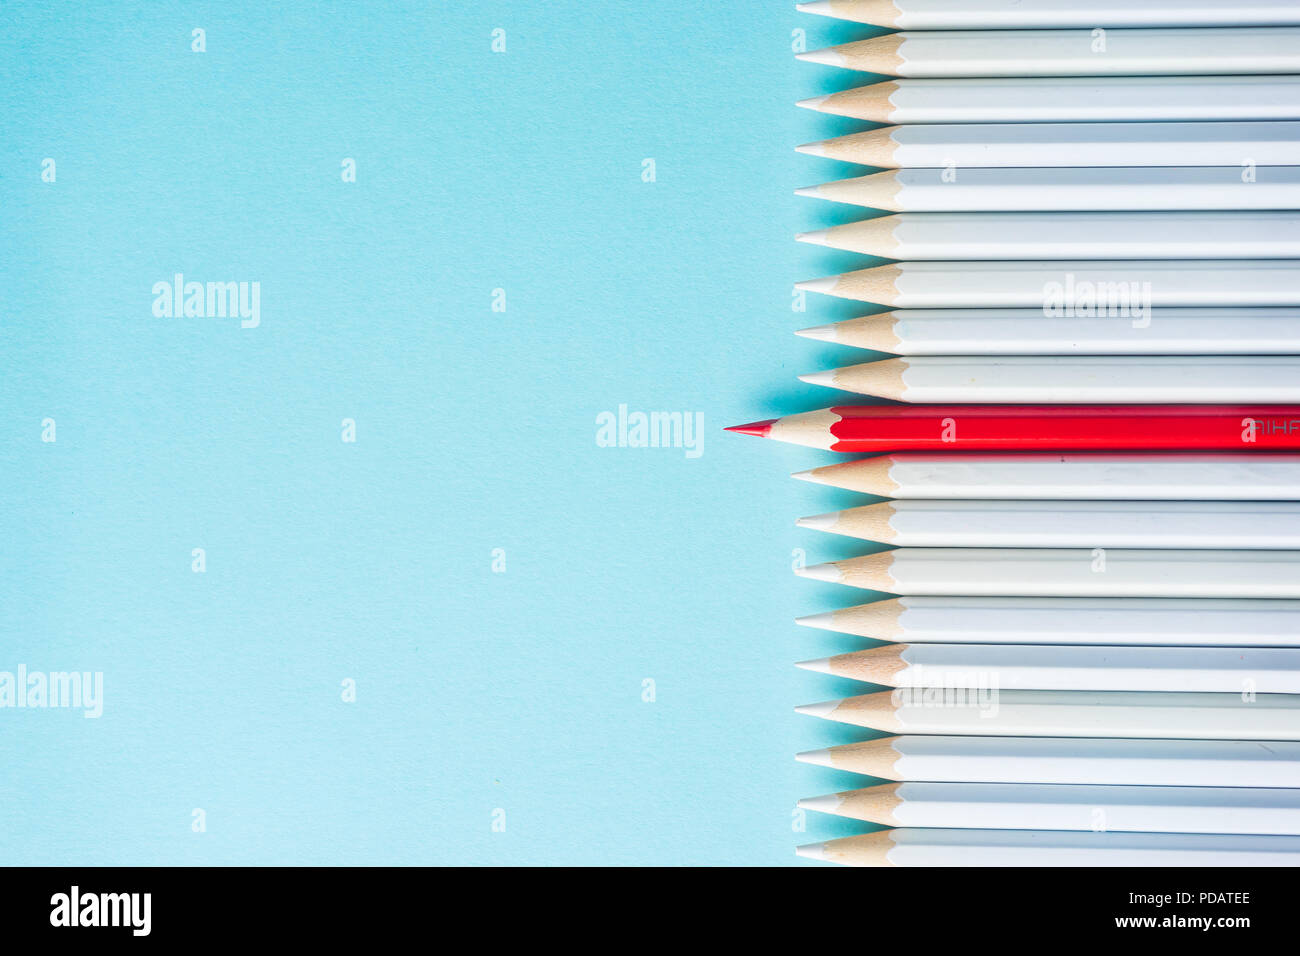 Business concept - lot of white pencils and color pencil on blue paper background. It's symbol of fight, leadership and communication. - Stock Image